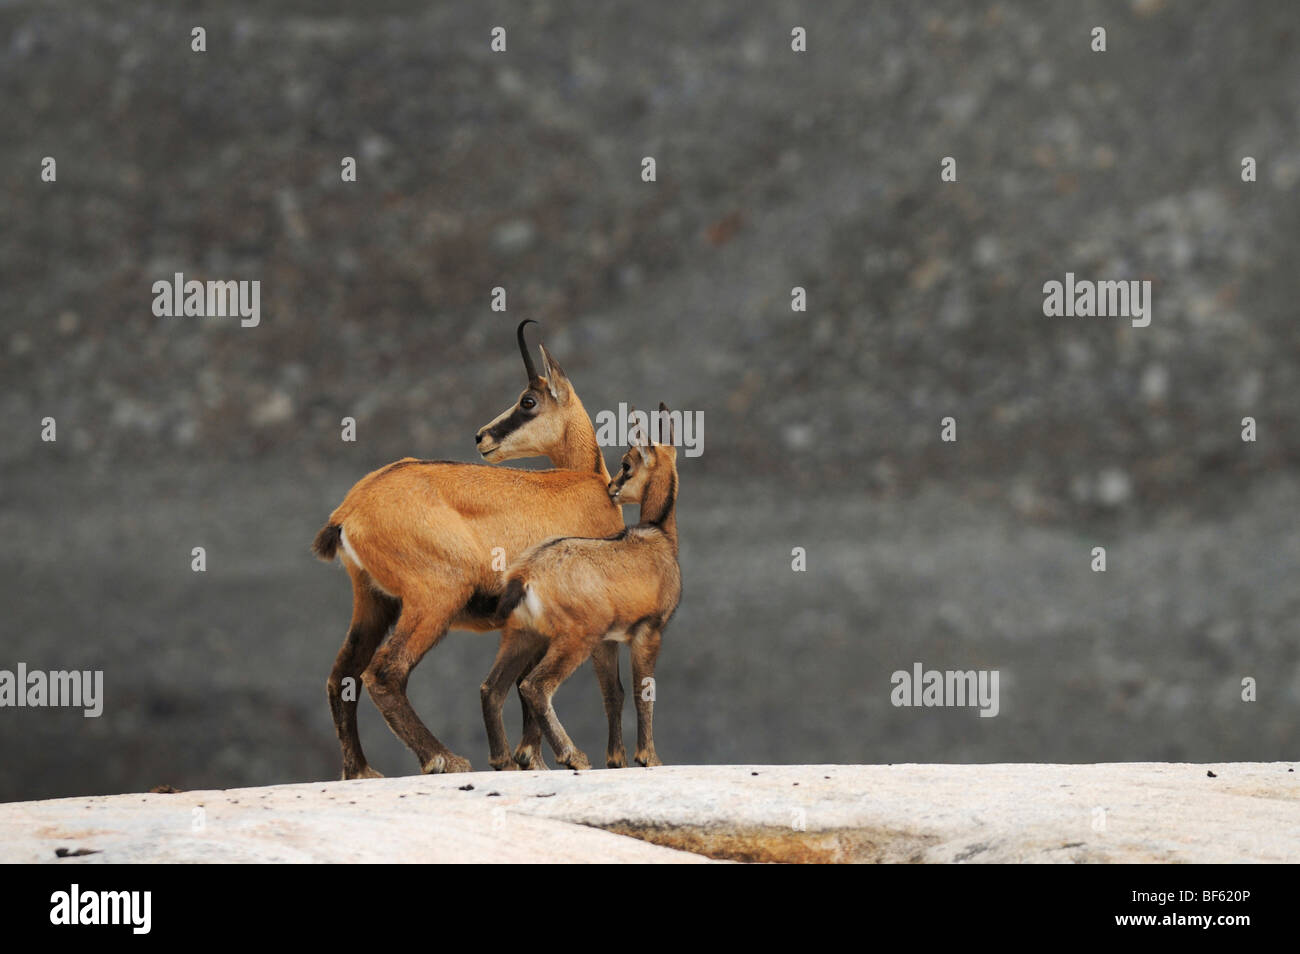 Chamois (Rupicapra rupicapra), female with young, Grimsel, Bern, Switzerland, Europe - Stock Image